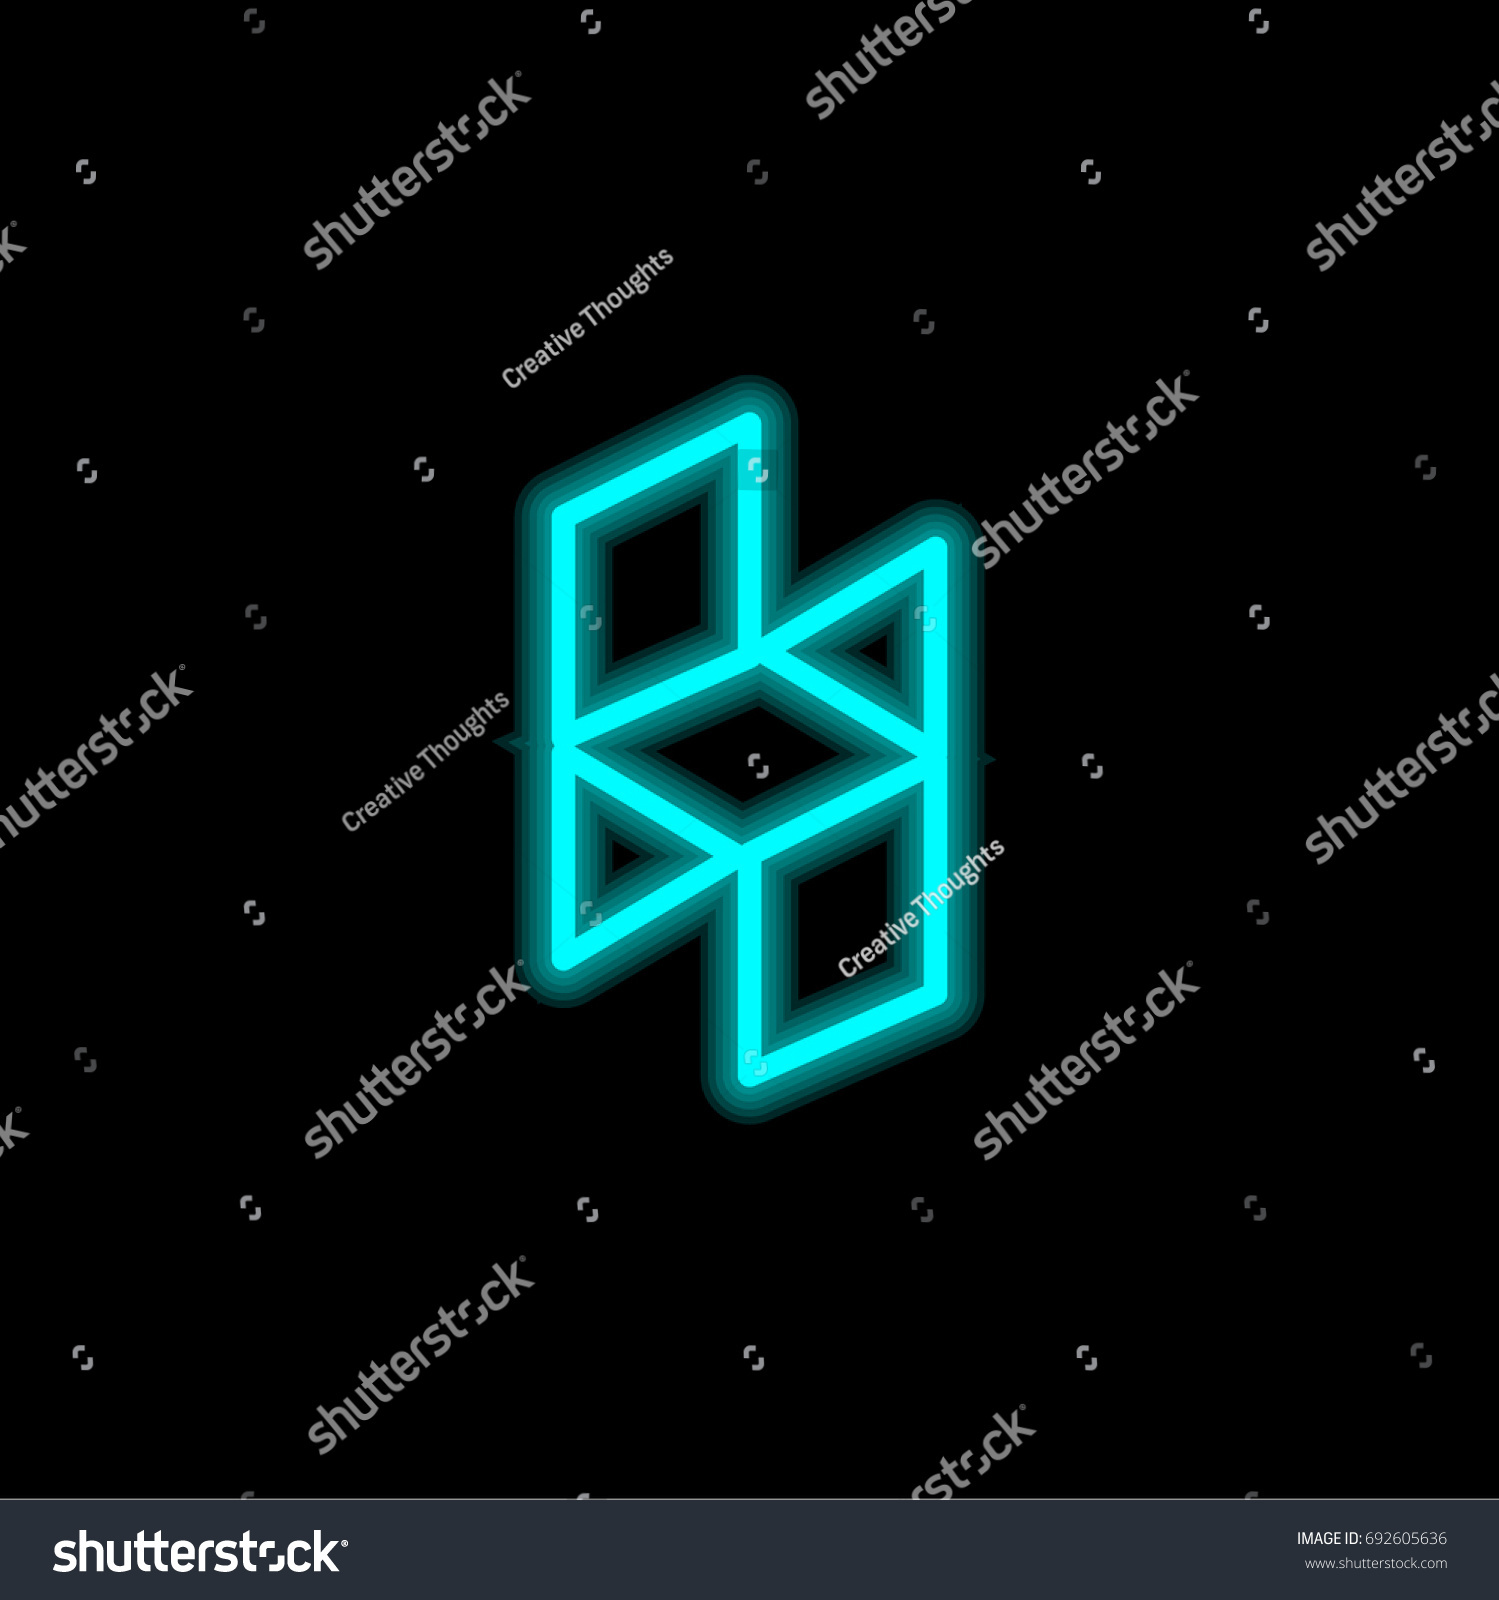 Houzz blue glowing neon ui ux stock vector 692605636 shutterstock houzz blue glowing neon ui ux icon glowing sign logo vector biocorpaavc Image collections